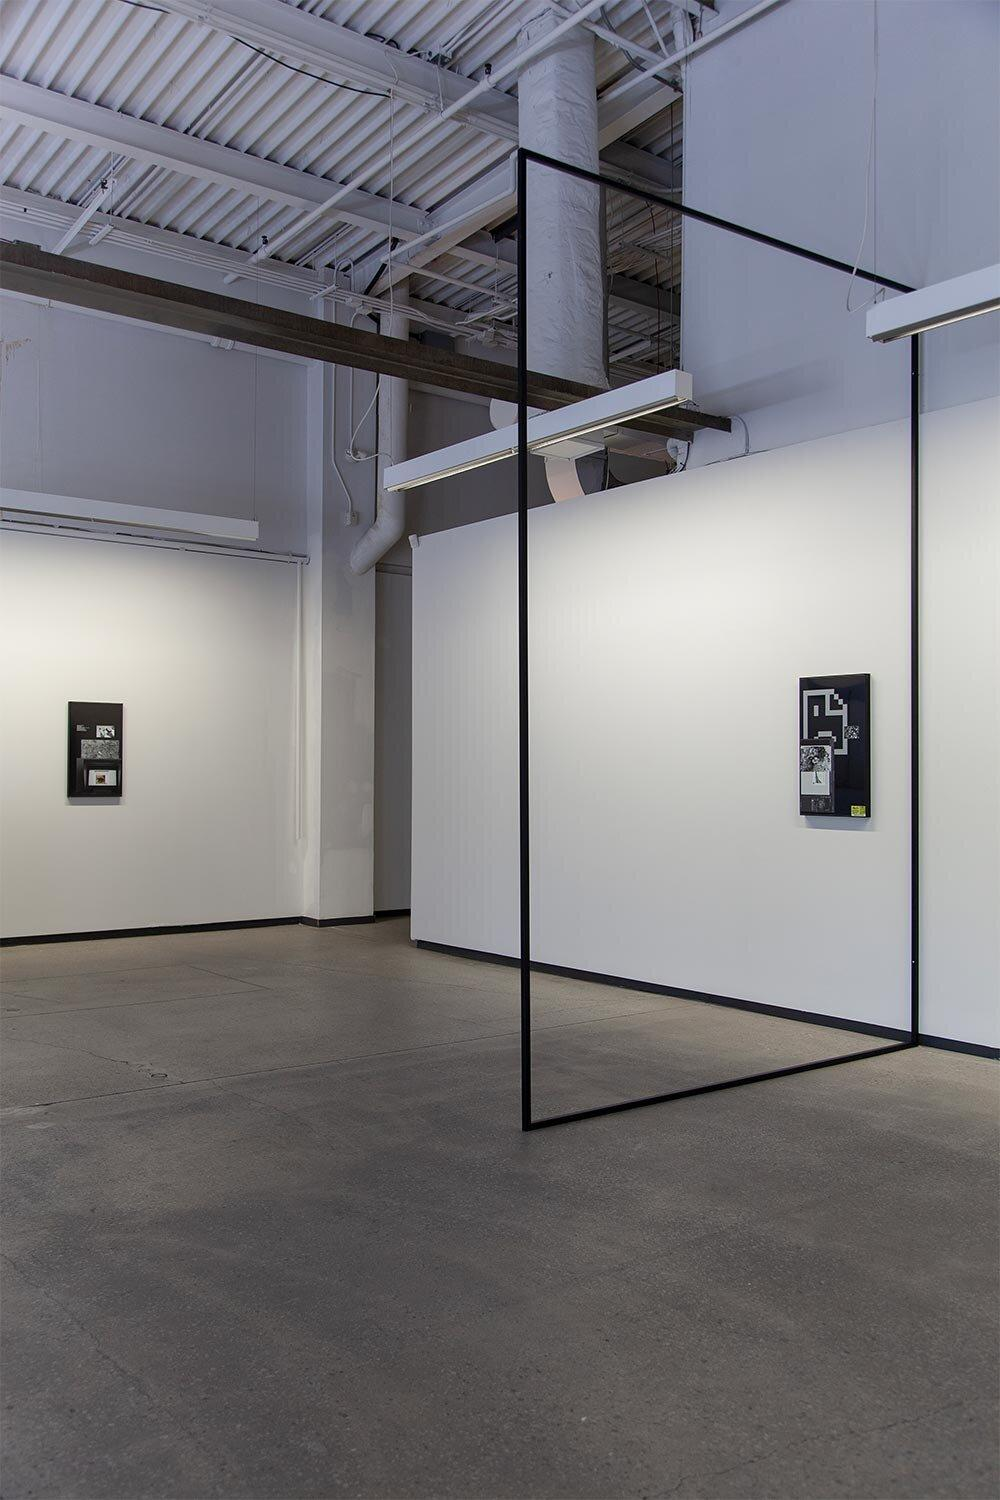 Installation view of Screen Fade at Blouin Division from Matthieu Grenier